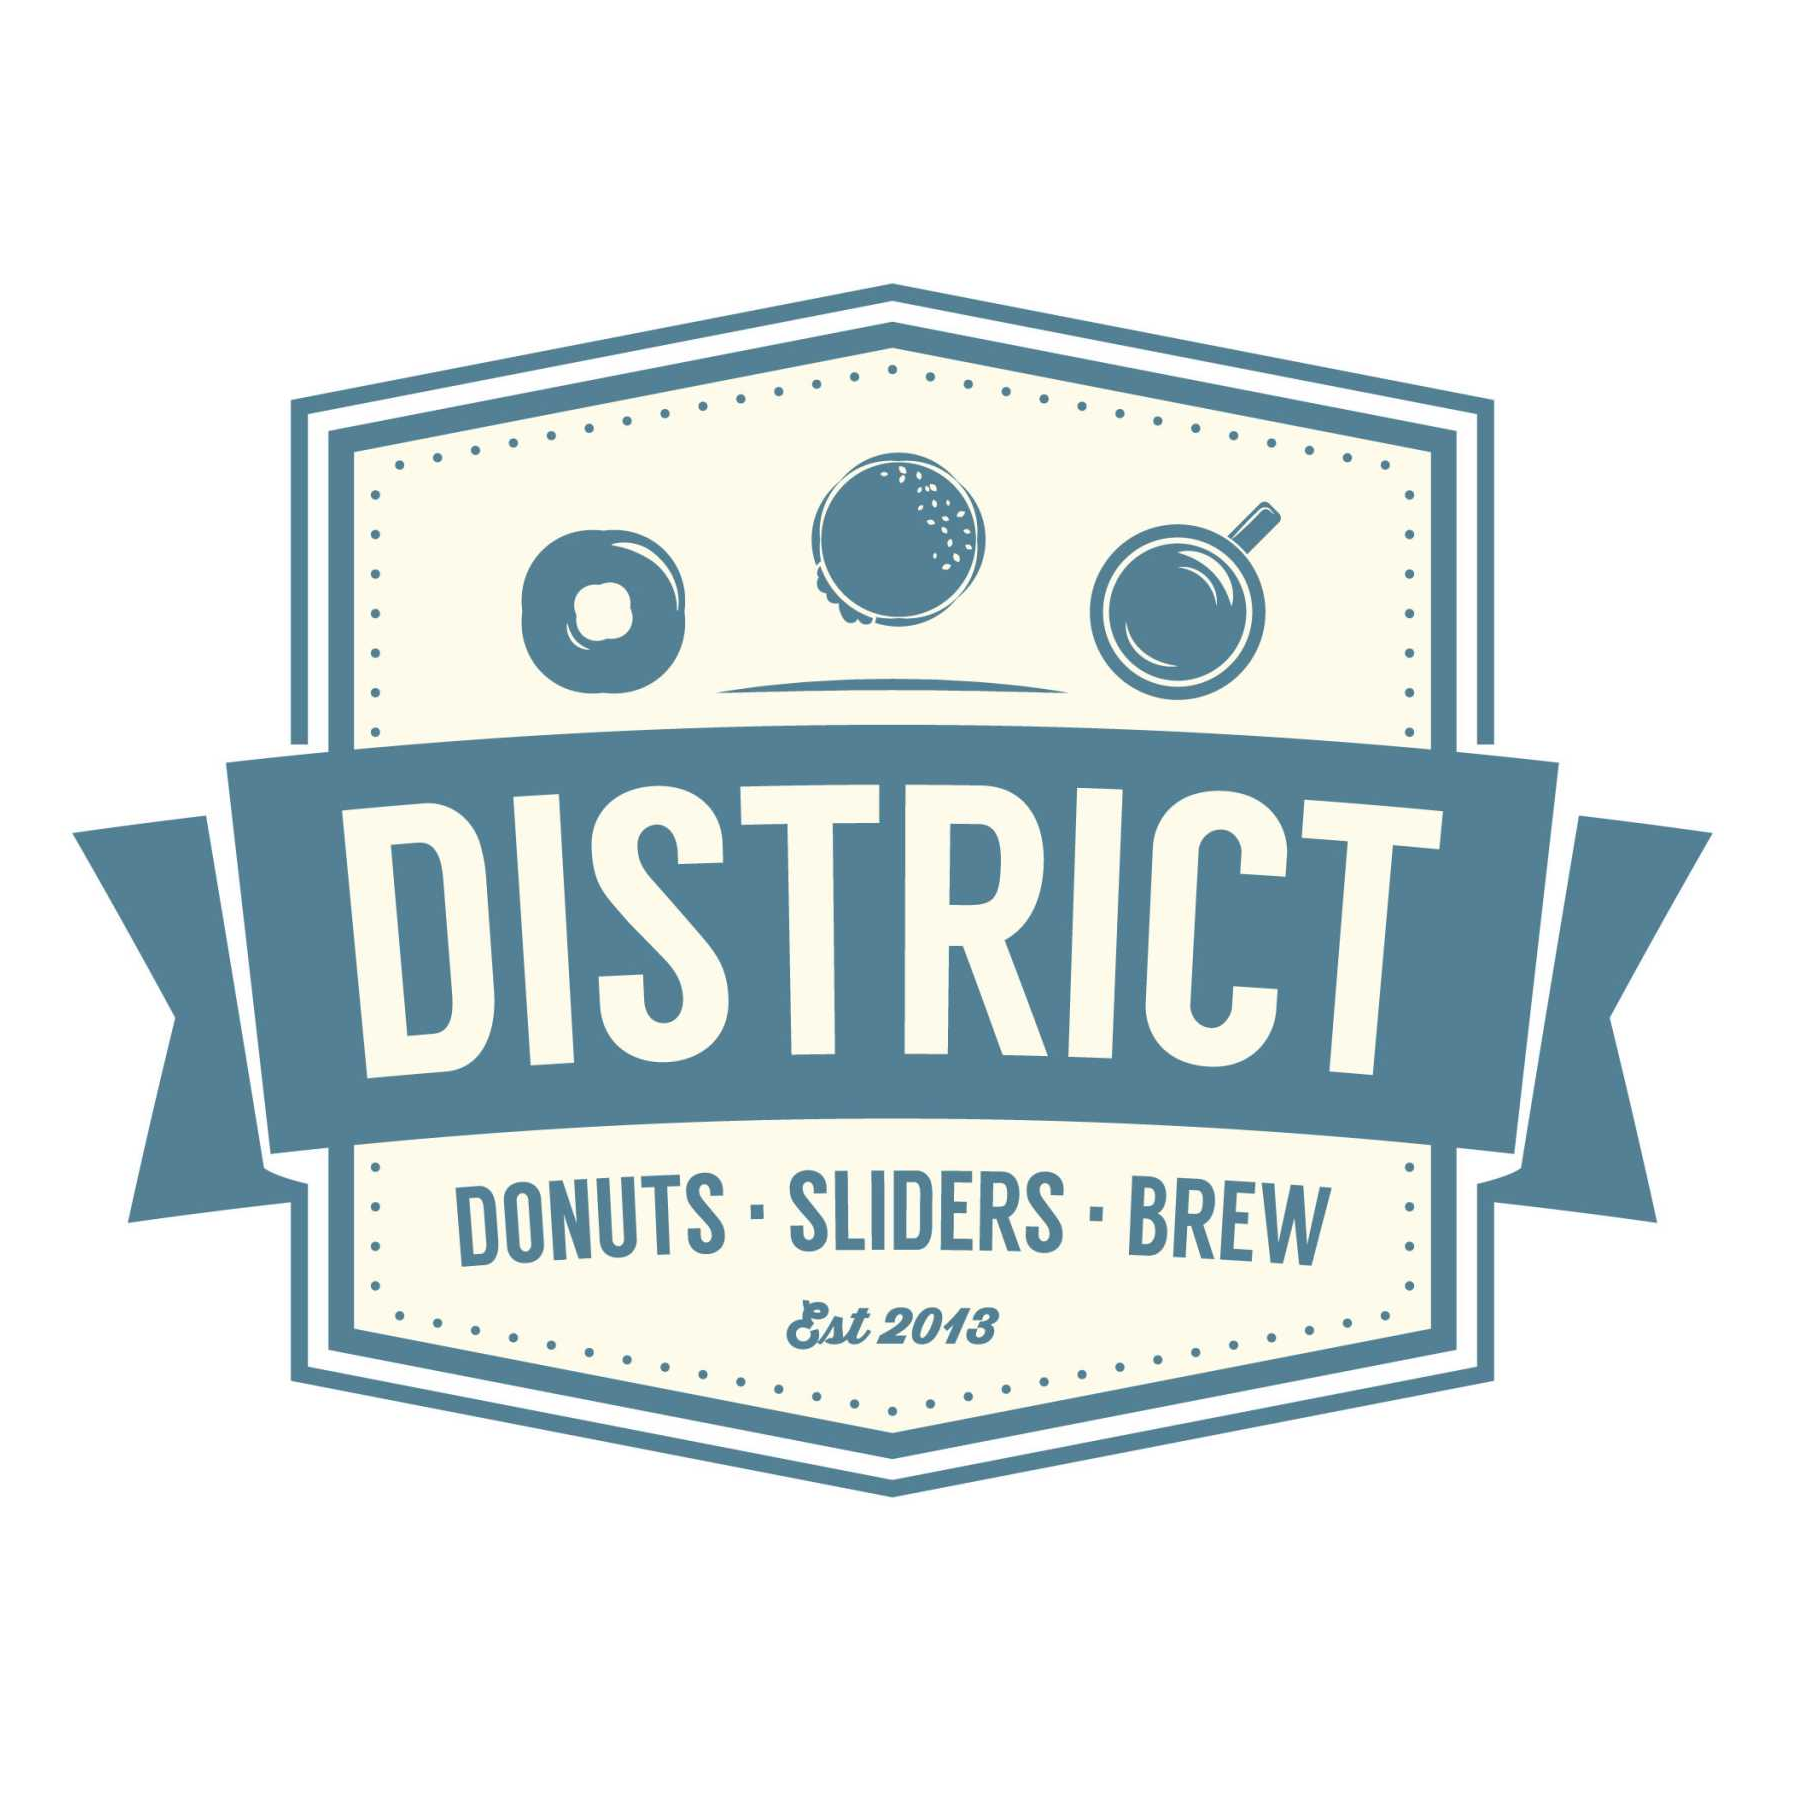 District: Donuts. Sliders. Brew. image 0